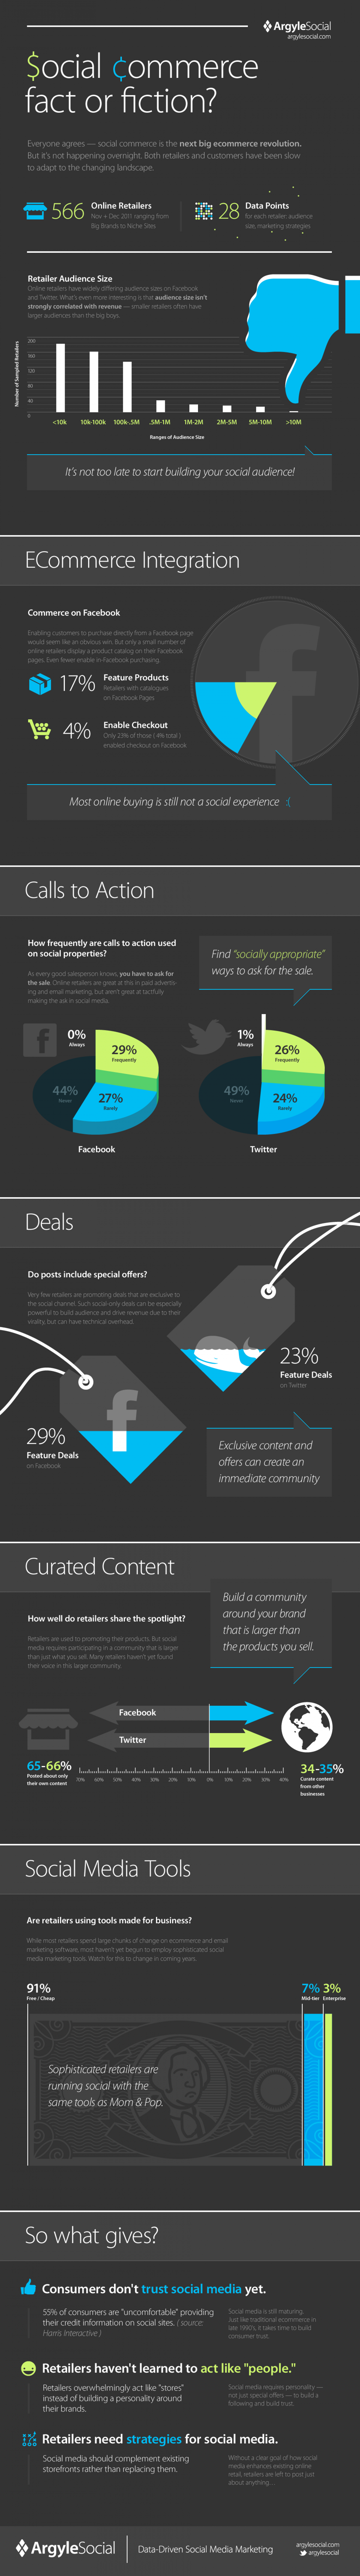 Social Commerce: Fact or Fiction Infographic